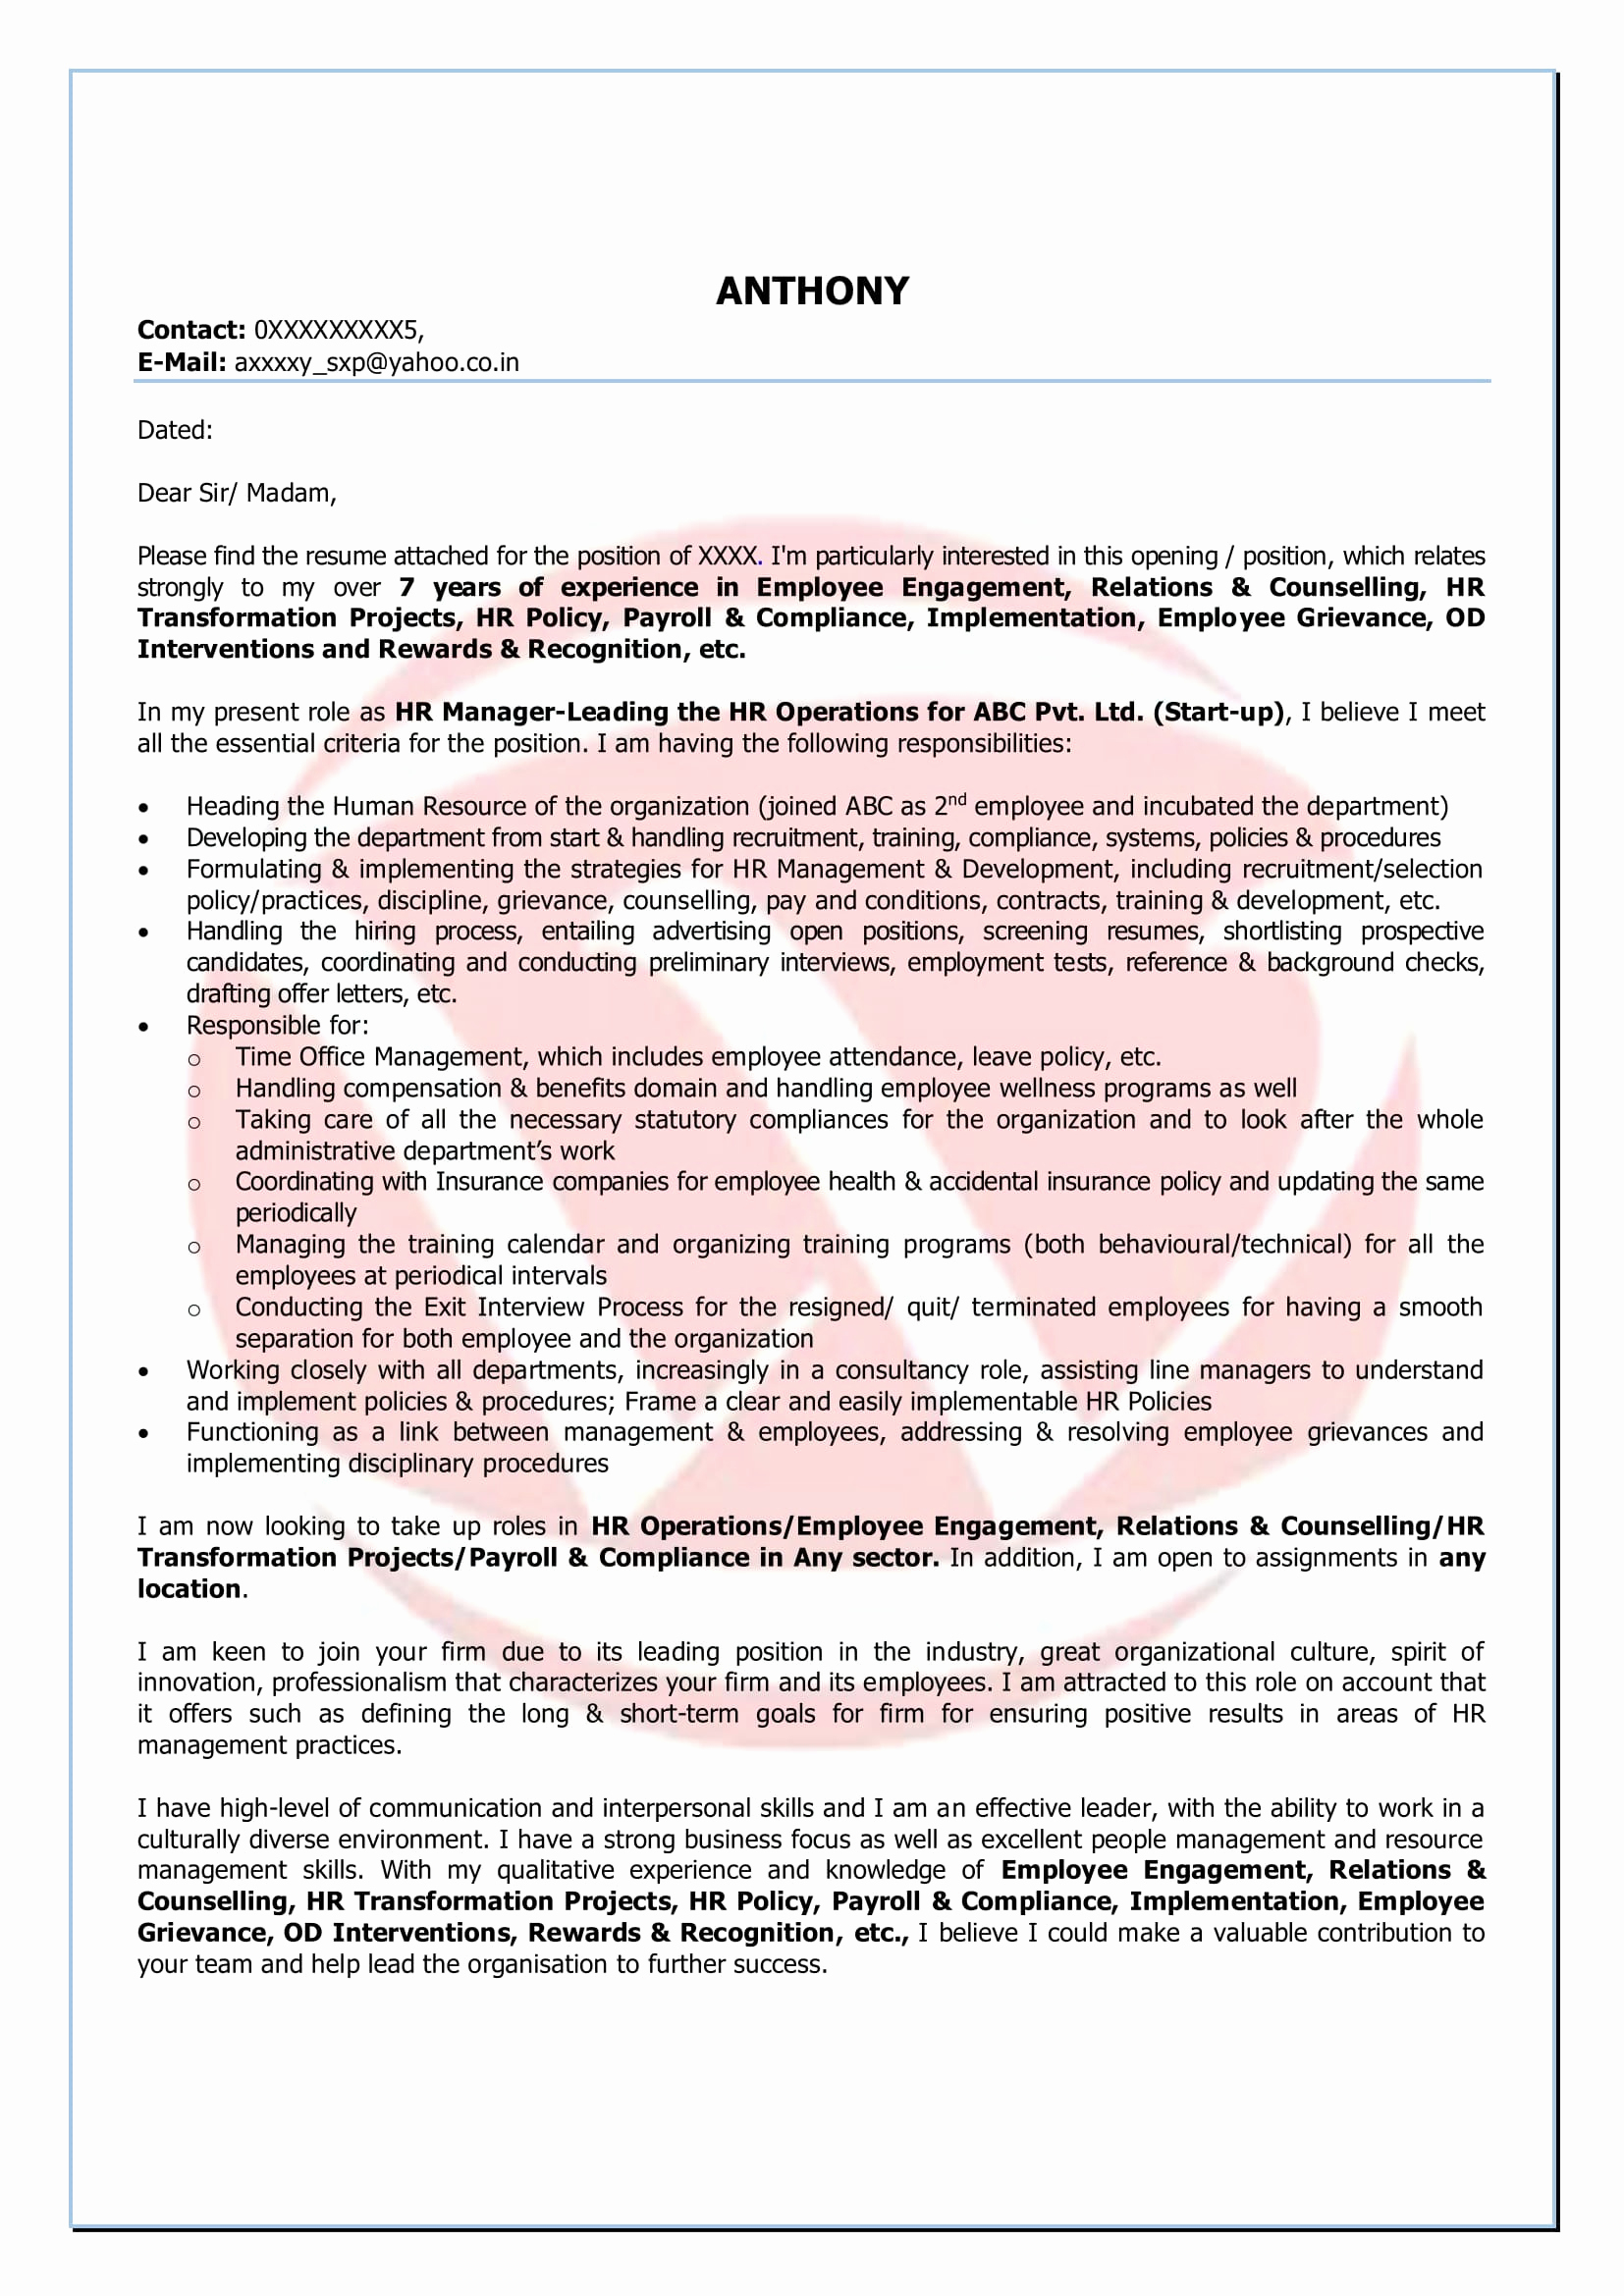 Cover Letter Template Retail Manager - Cover Letter Retail Manager Elegant How to Write A Covering Letter